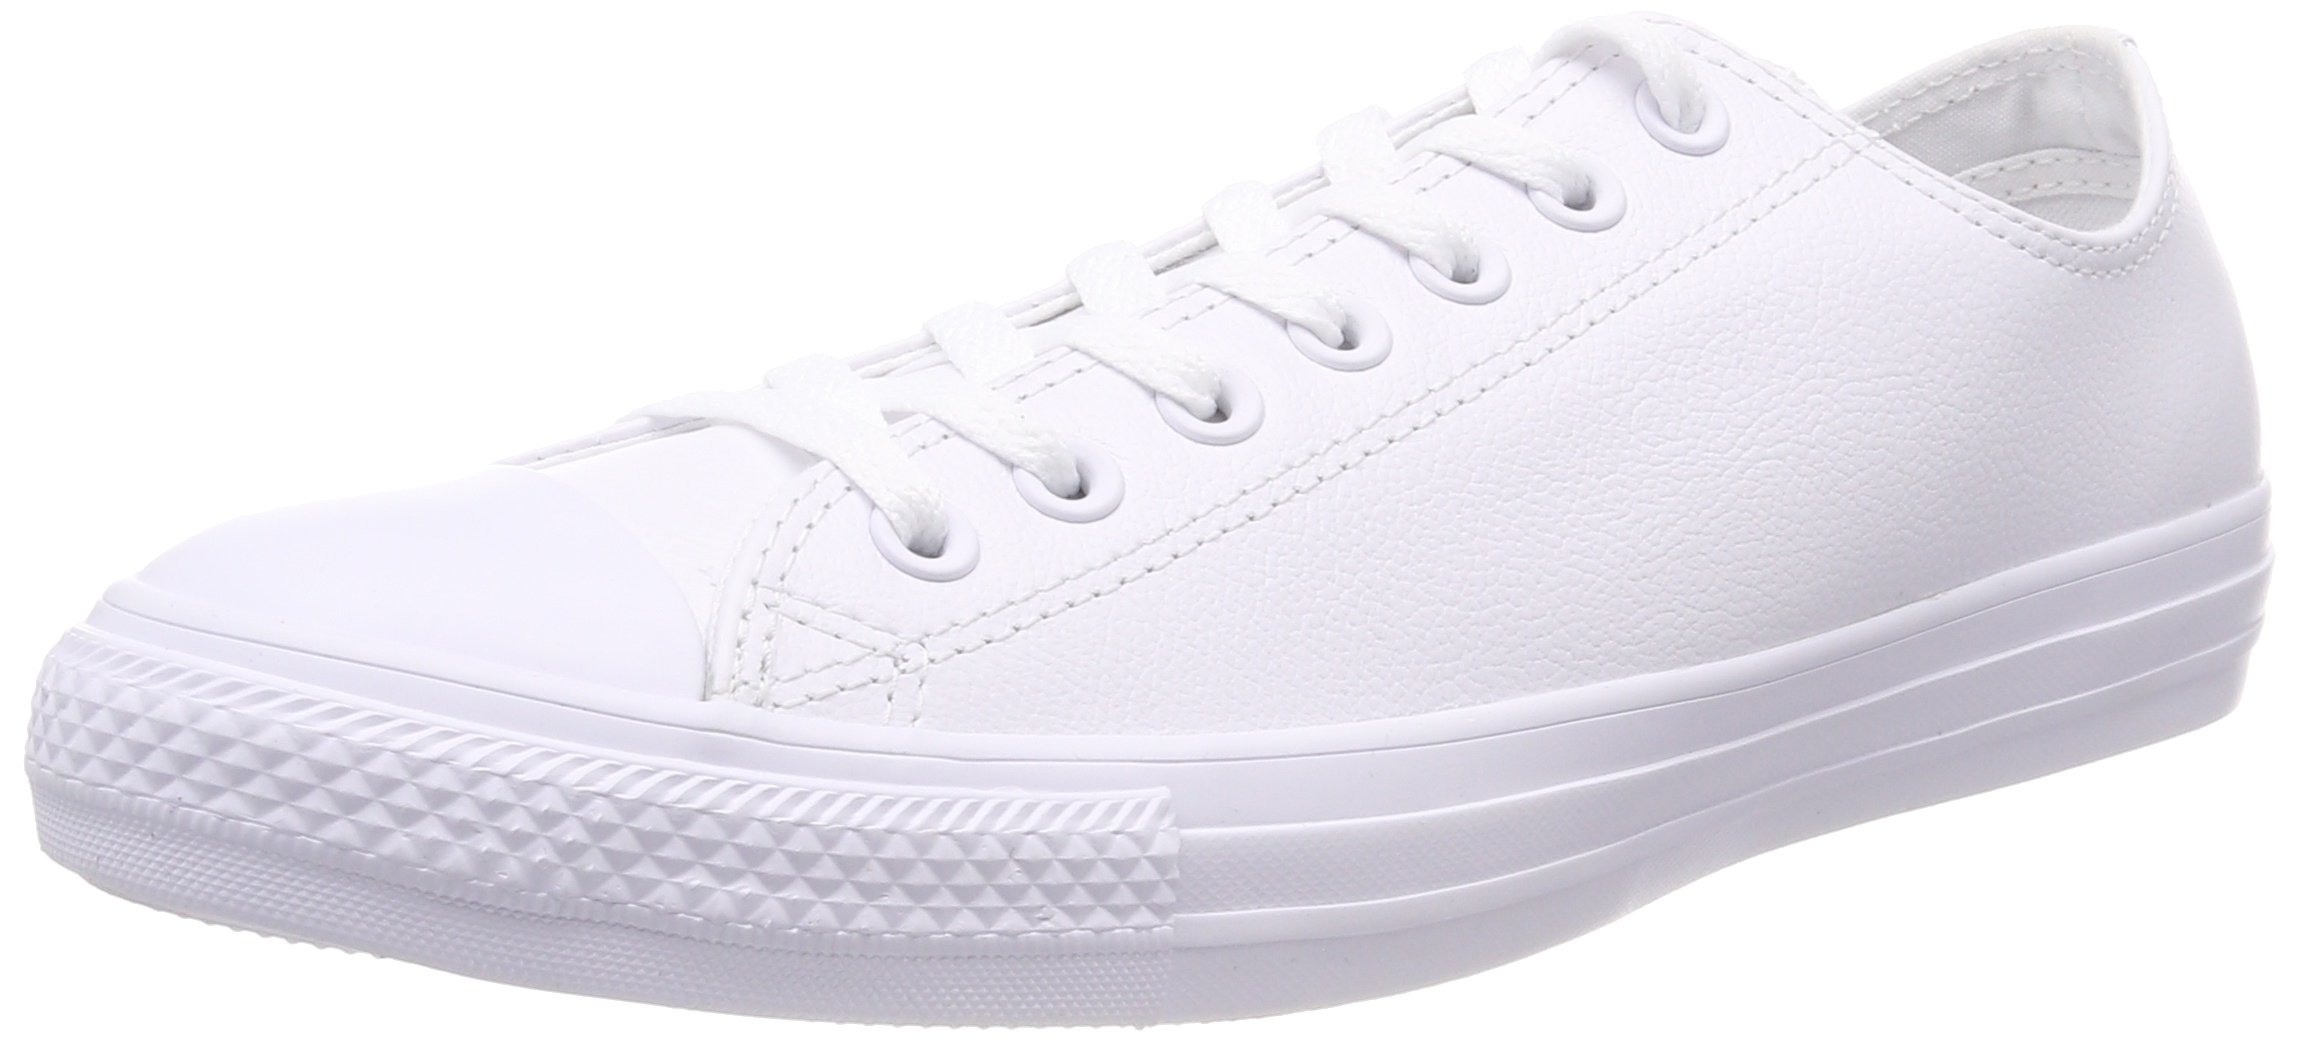 338975557dfb4 Converse Unisex Chuck Taylor All Star Ox Low Top Classic White Leather  Sneakers - 12.5 B(M) US Women / 10.5 D(M) US Men